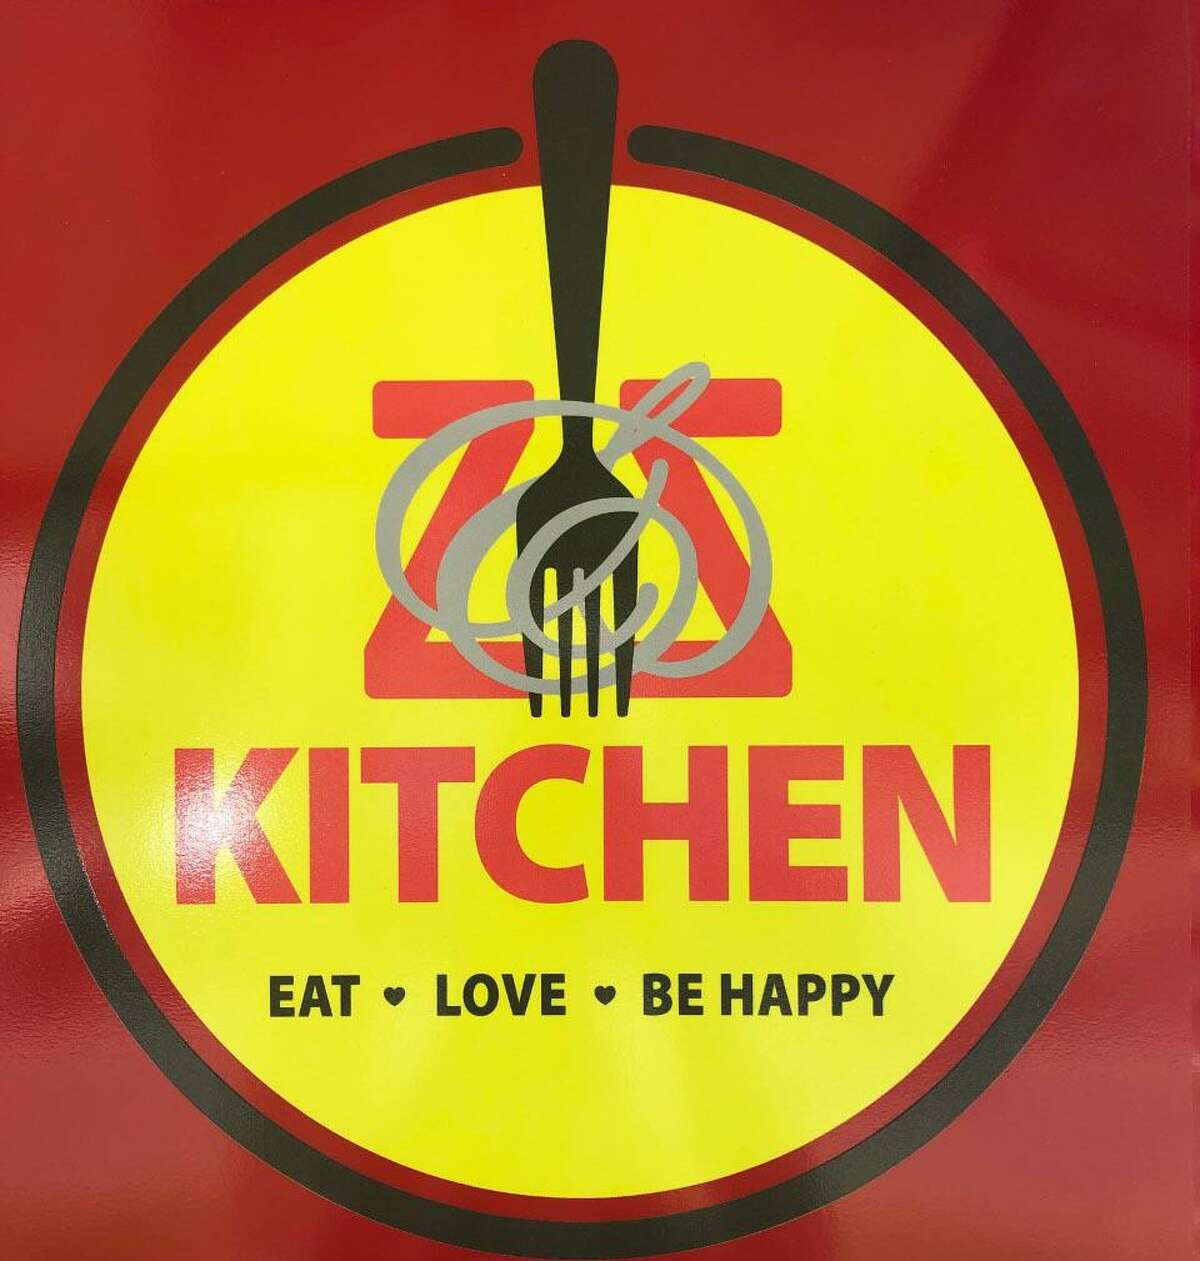 Spectrum/Patti and Ted Zaloski of New Milford opened Zz Kitchen, a food cart housed at the parking lot at Conn's Pond in New Milford, in May 2019.